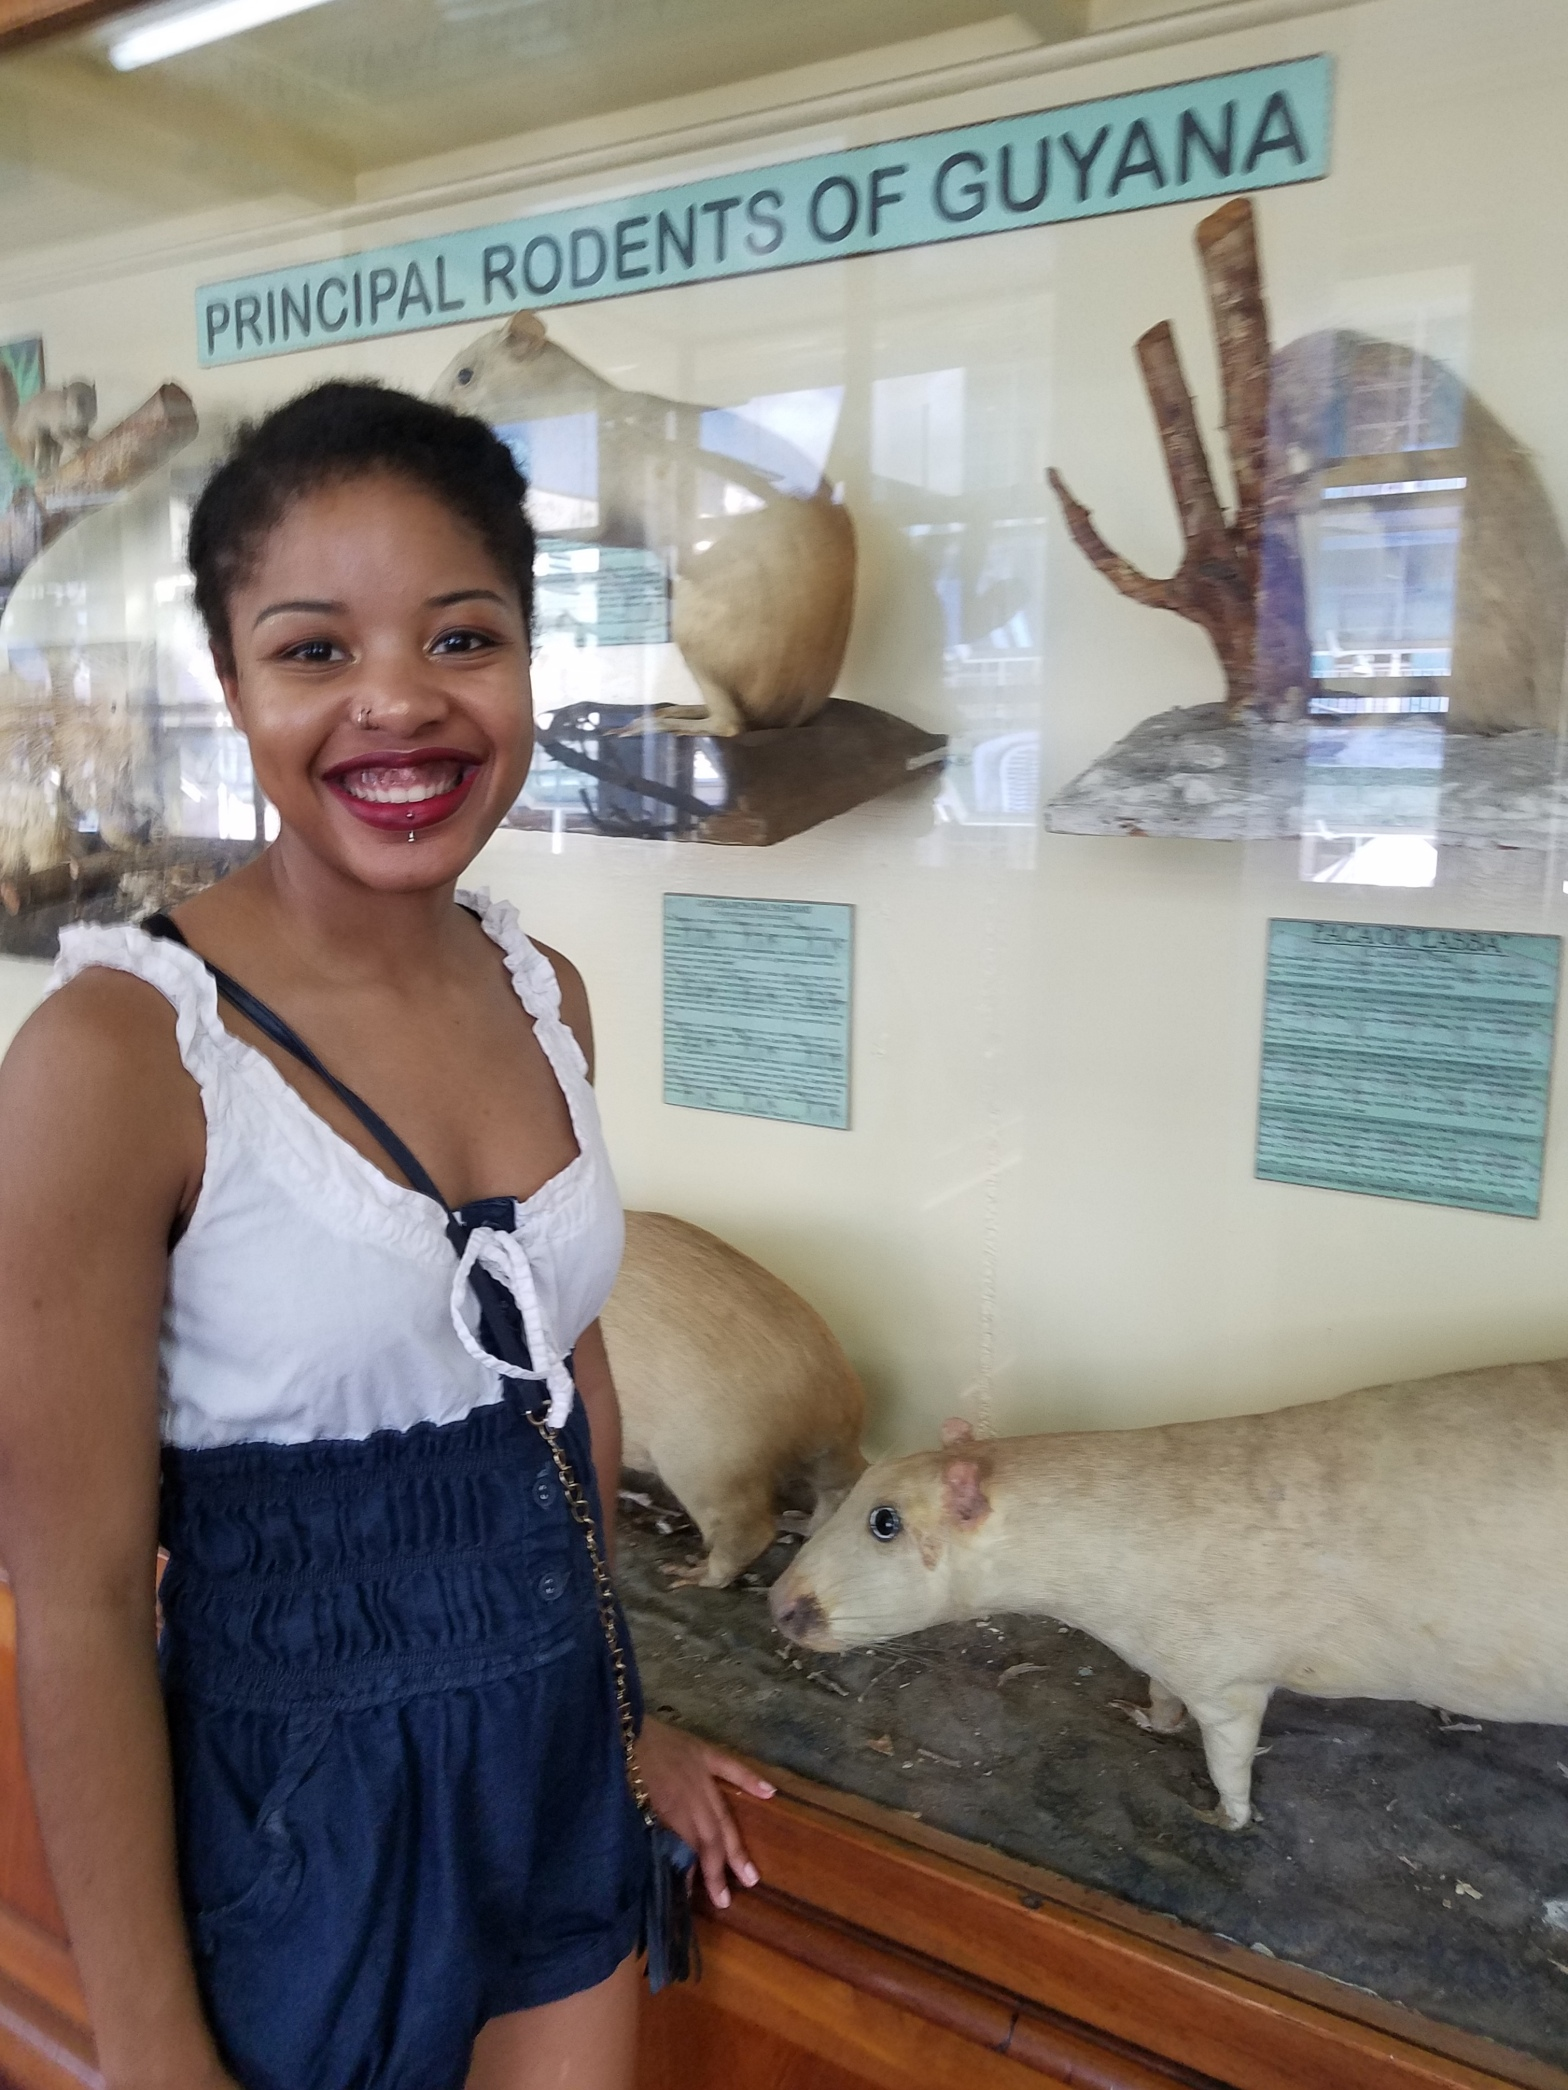 Me Visiting the Guyana National Museum